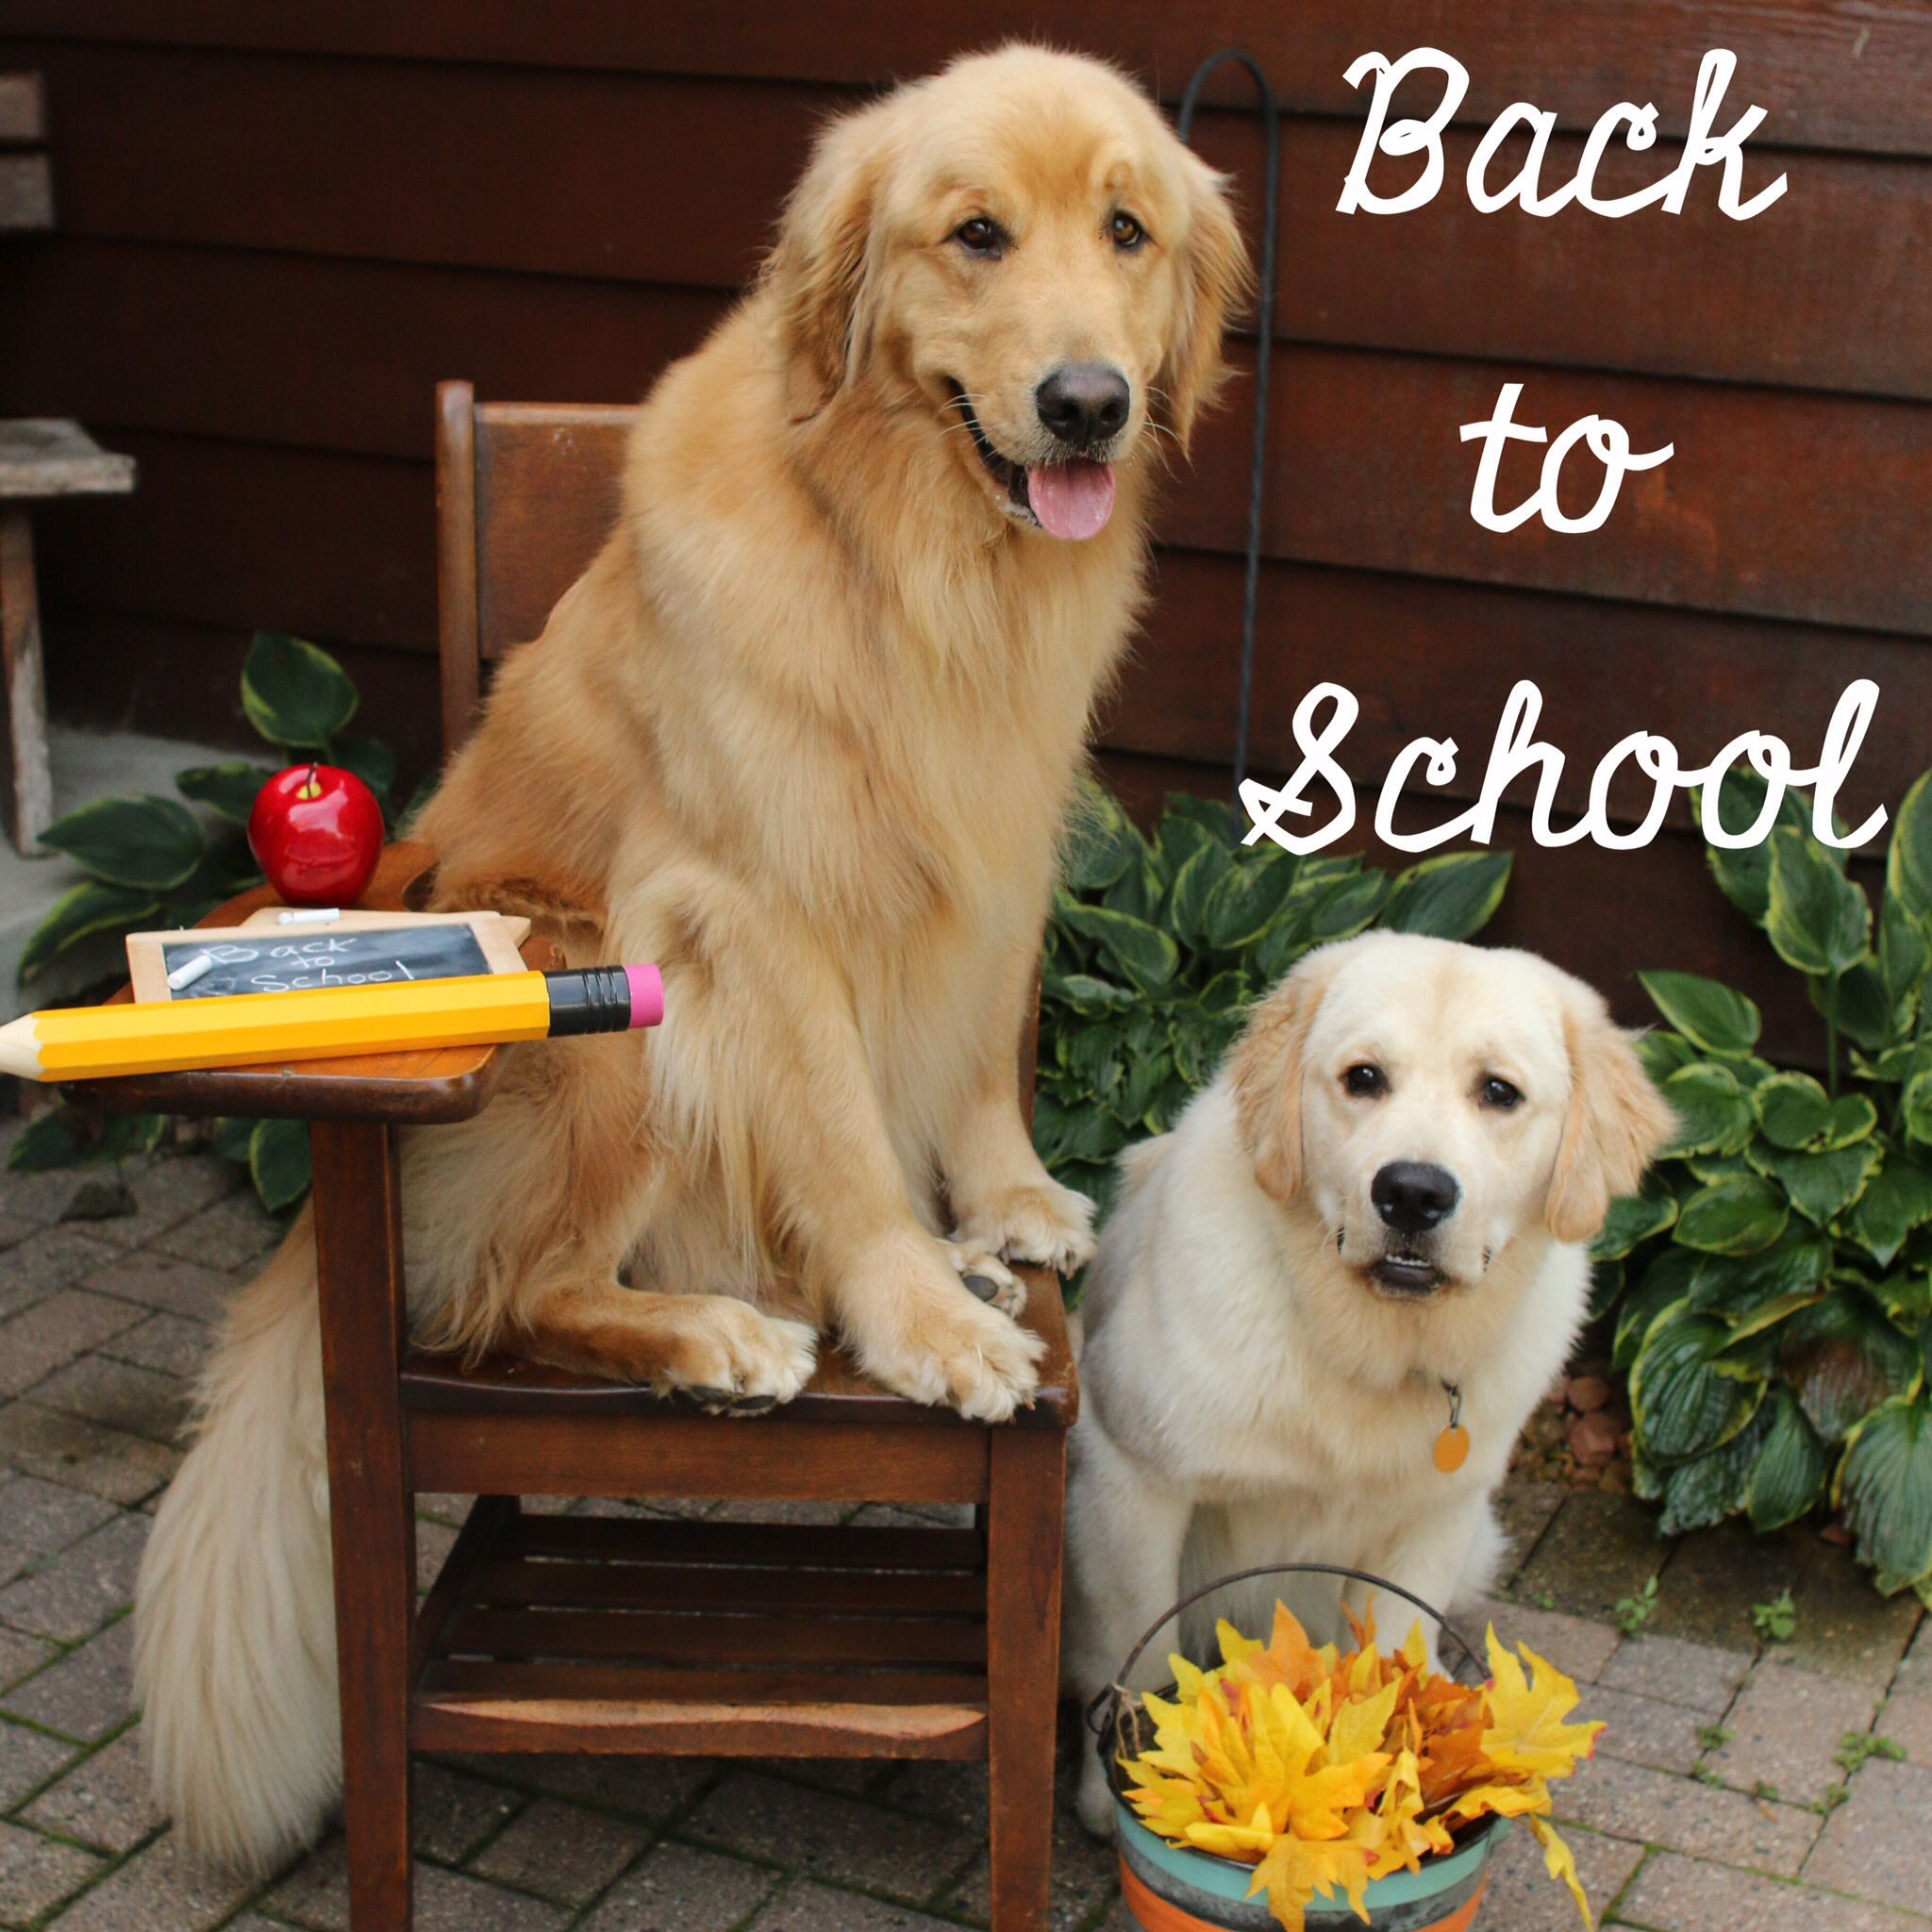 Back To School Beautiful Dog Breeds Most Beautiful Dog Breeds Dogs Golden Retriever